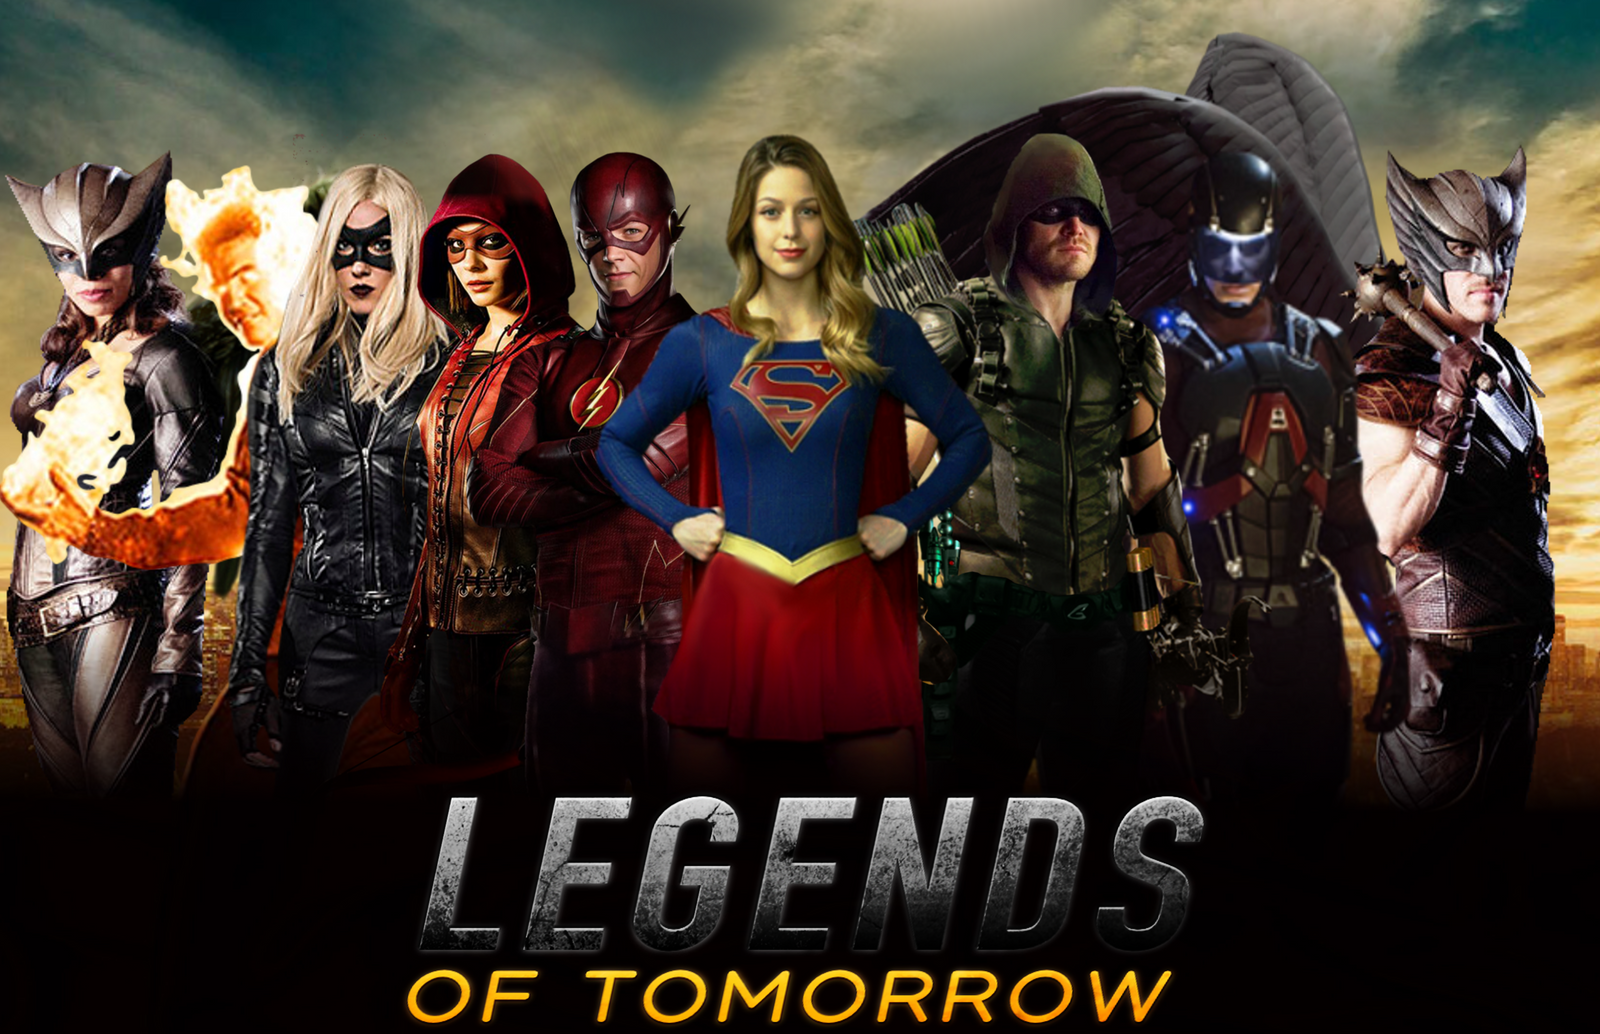 Dc S Legends Of Tomorrow Wallpaper And Background Image: Legends Of Tomorrow Wallpaper For The Desktop [1920 X 1080